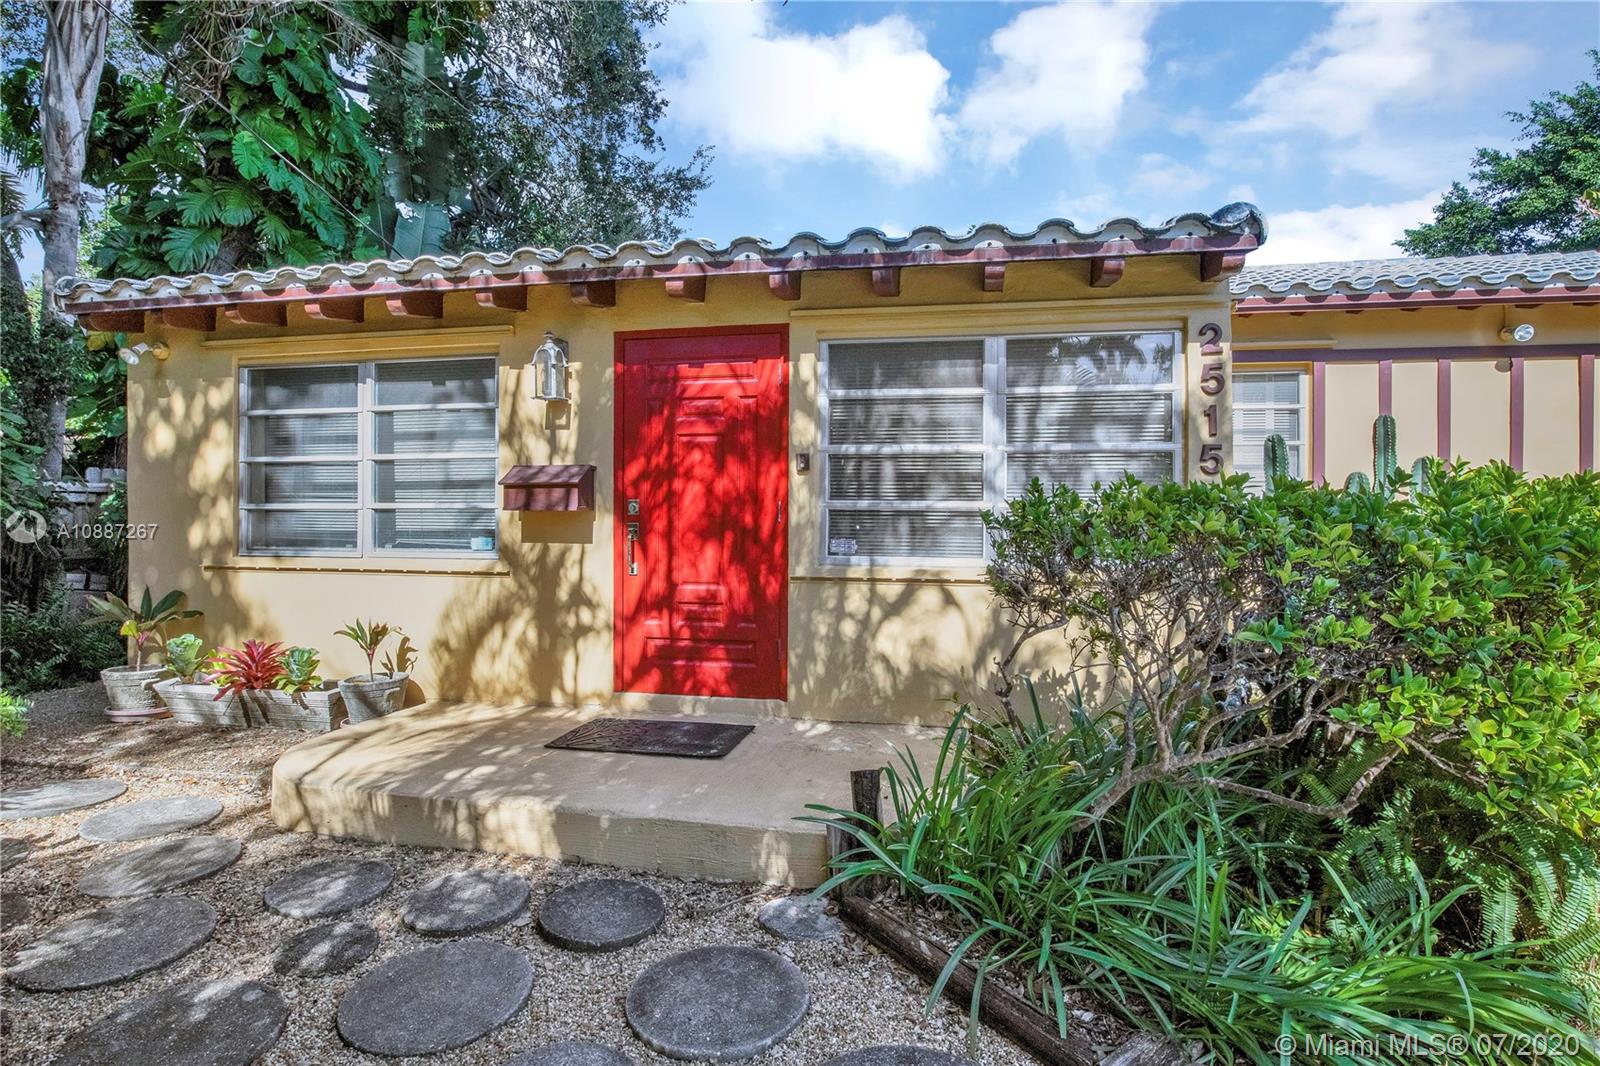 "Great Buy in a Million dollar neighborhood! North Coconut Grove home with large florida room, high ceilings and extra storage. Spacious backyard with a private deck and access from the large Primary bedroom. Close to Berries, Coral Bagels, Kennedy Park, Grove Village, Cocowalk, Biscayne Bay, Fresh Market, Downtown, Brickell, Key Biscayne,  University of Miami, excellent schools, and the Bay. Location and opportunity to own or rebuild existing structure in sought after North Grove neighborhood! No FLOOD ZONE-High elevation. No traffic from 27th Ave. LOT SIZE 80.000 X 93=7,440 SQ FT Contact Kathy for showings ""Buy land, they're not making it anymore."" Back up offers accepted"